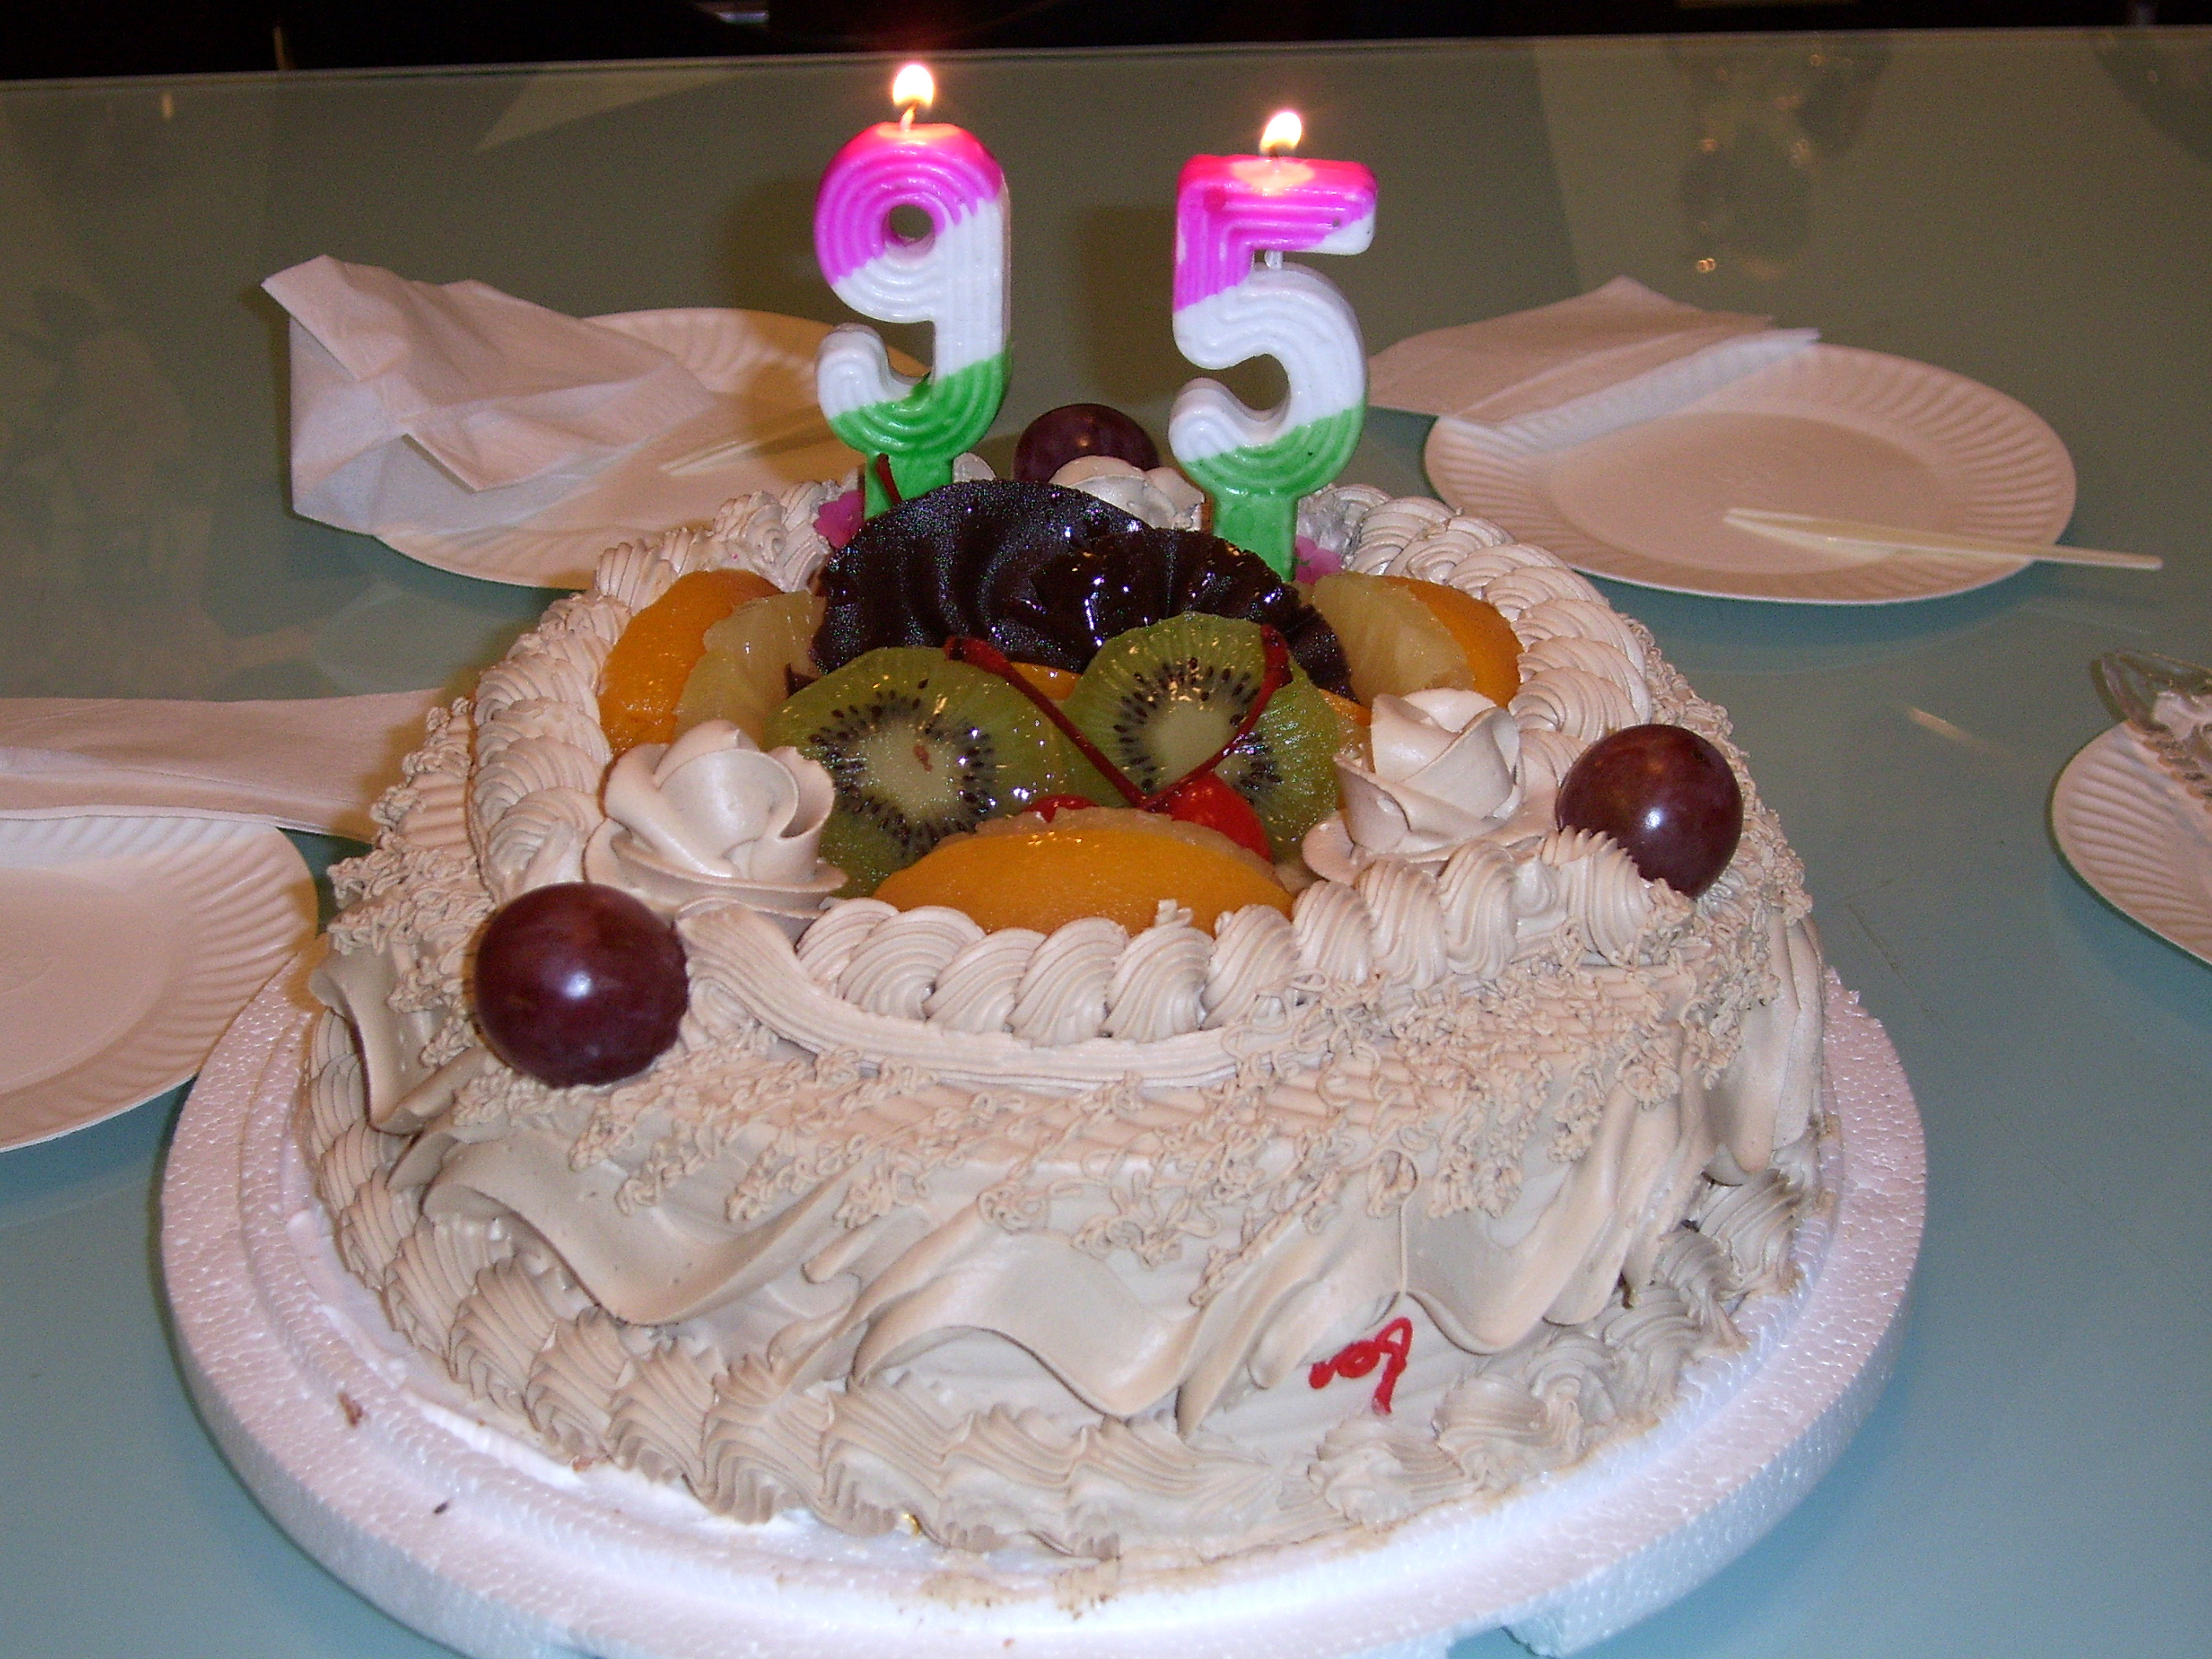 File:Birthday cake-95.JPG - Wikimedia Commons